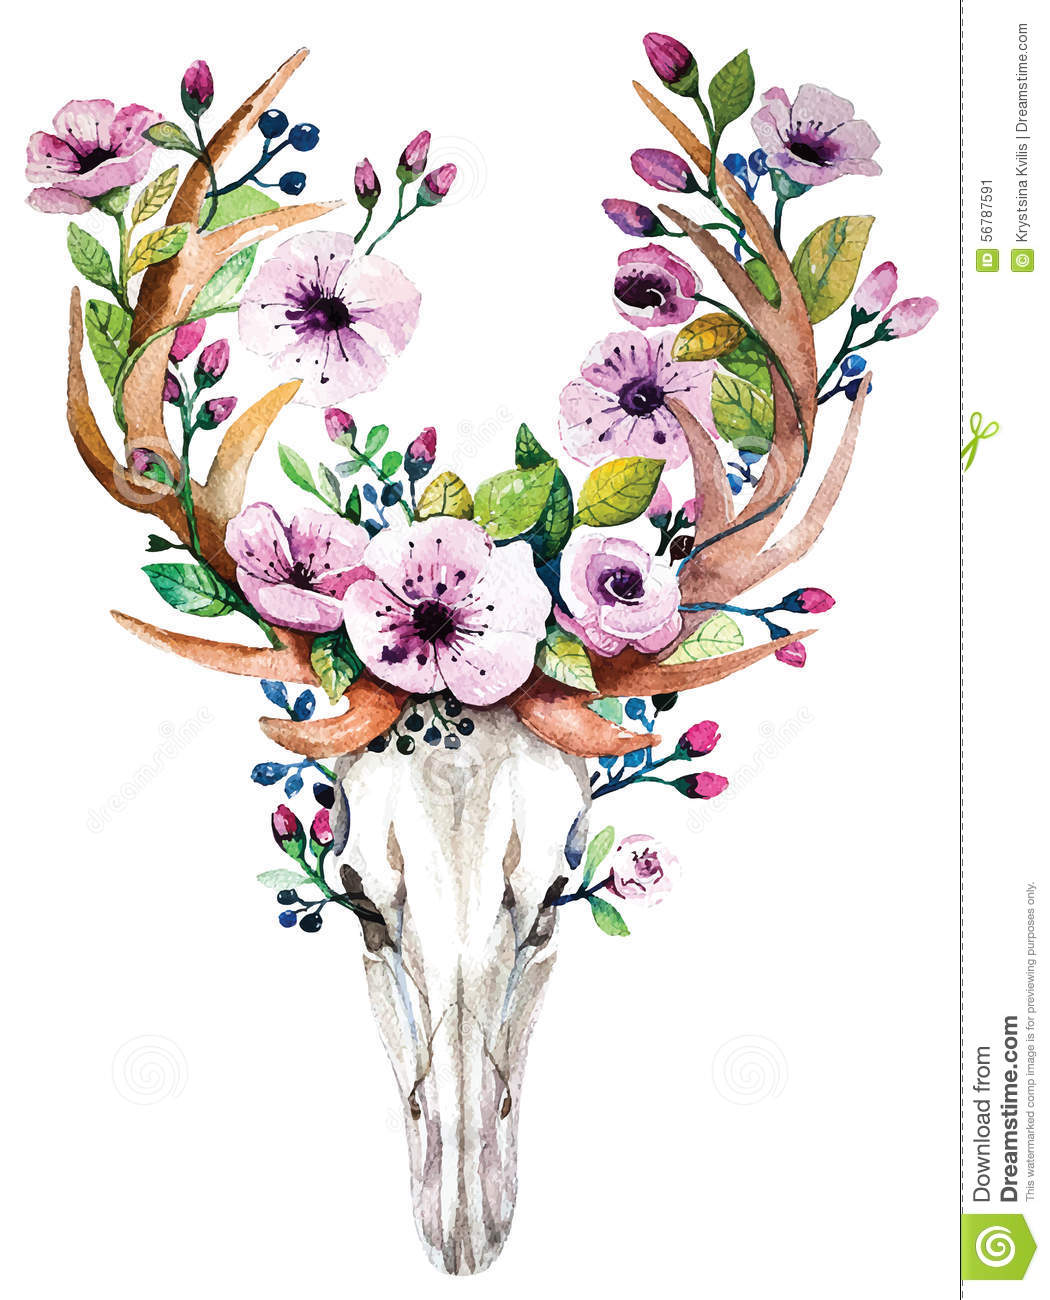 bright watercolor vector deer skull with flowers stock vector illustration of mystical. Black Bedroom Furniture Sets. Home Design Ideas